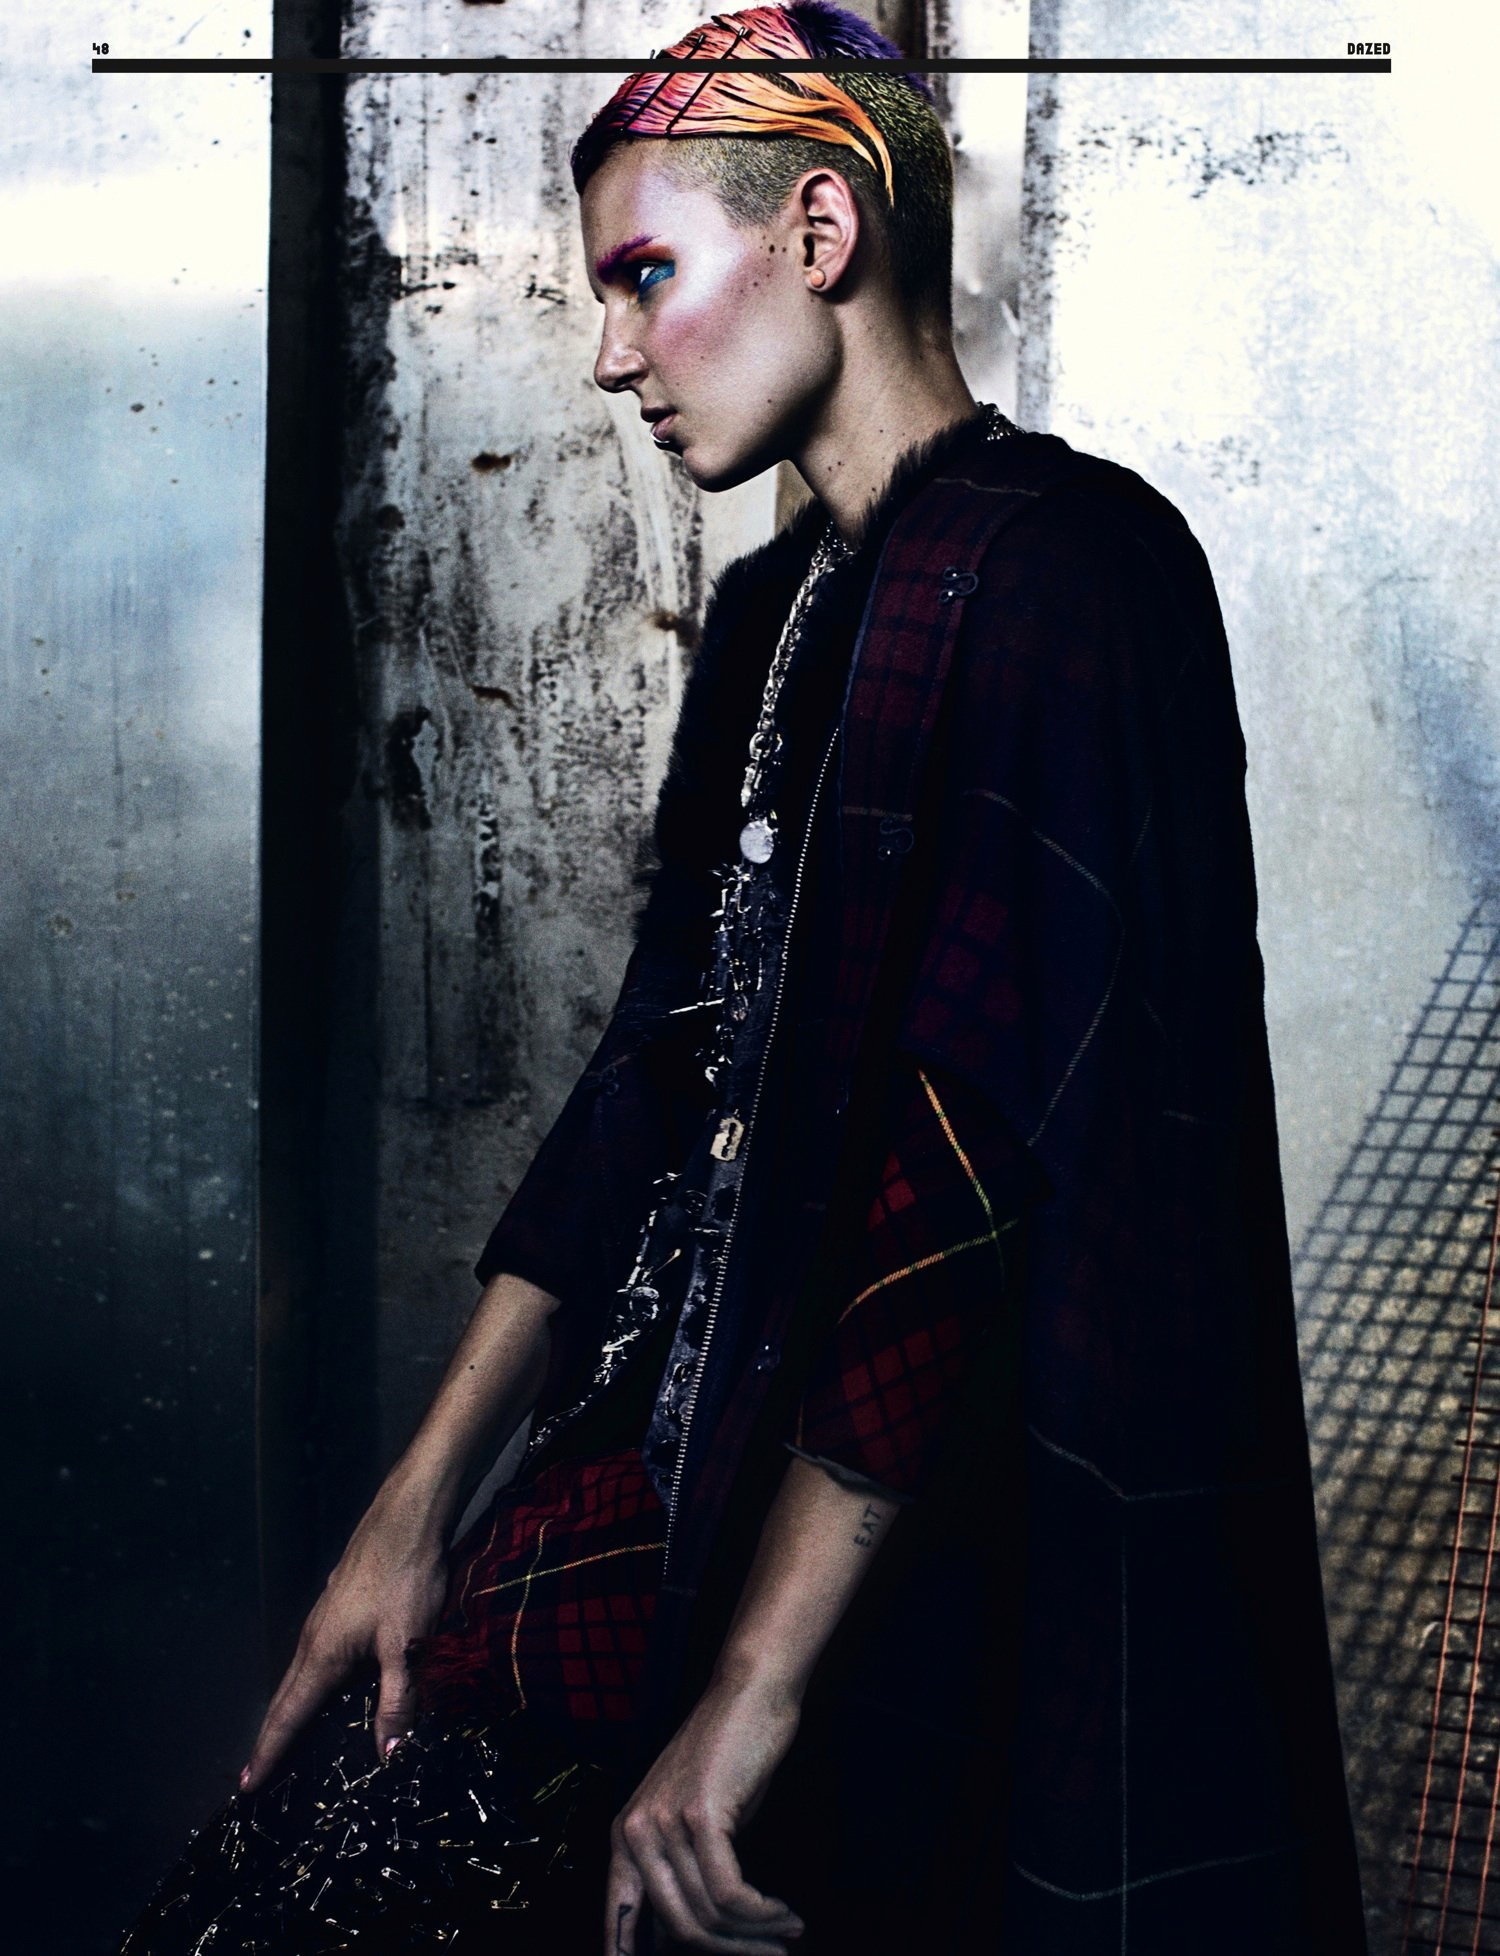 Alexander McQueen - Dazed and Confused magazine